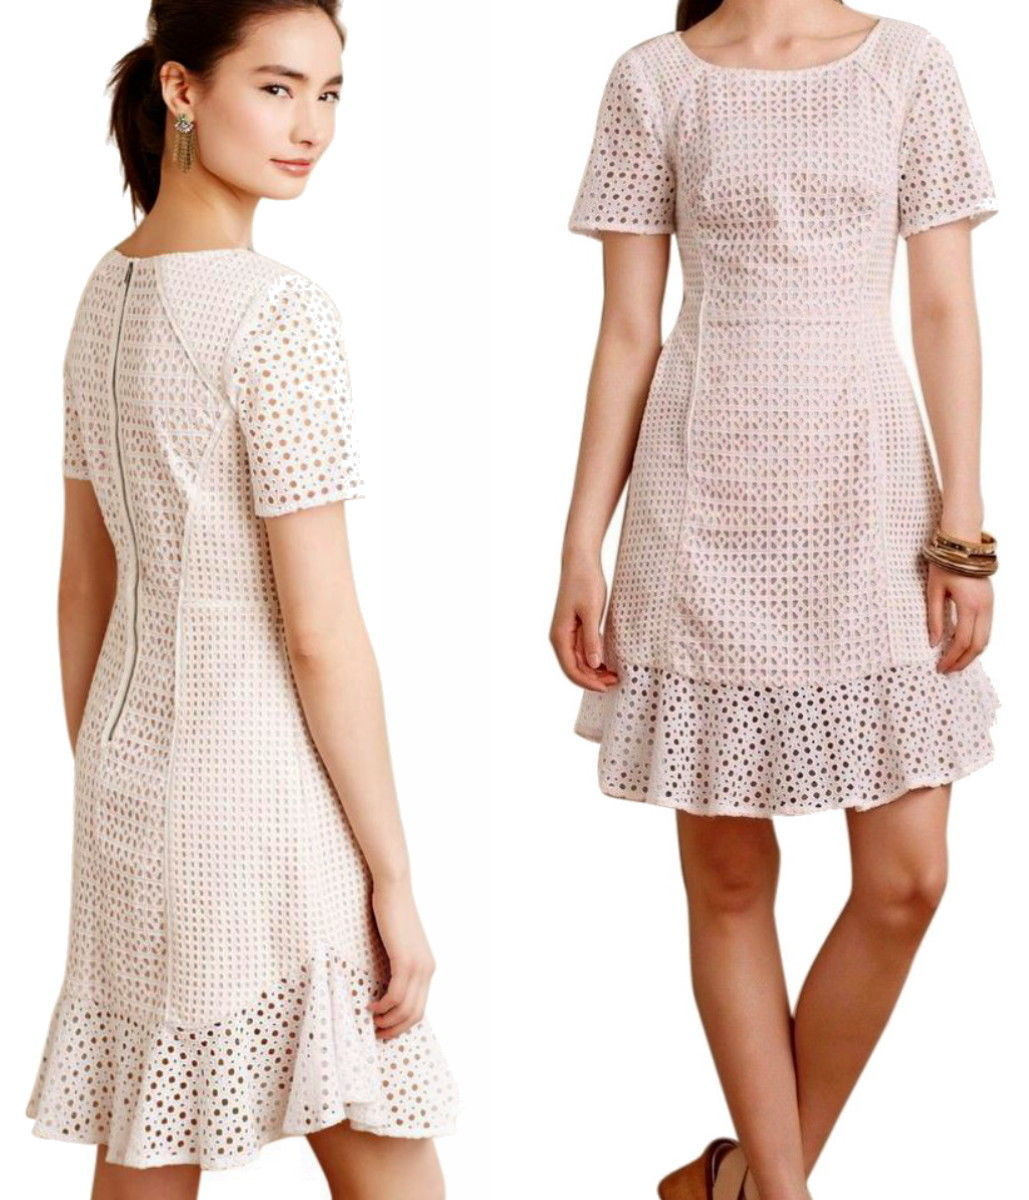 71b7d4f921b5 $188 Anthropologie French Lattice Dress 10 Large White w Nude Lining Simple  Sexy - $89.00